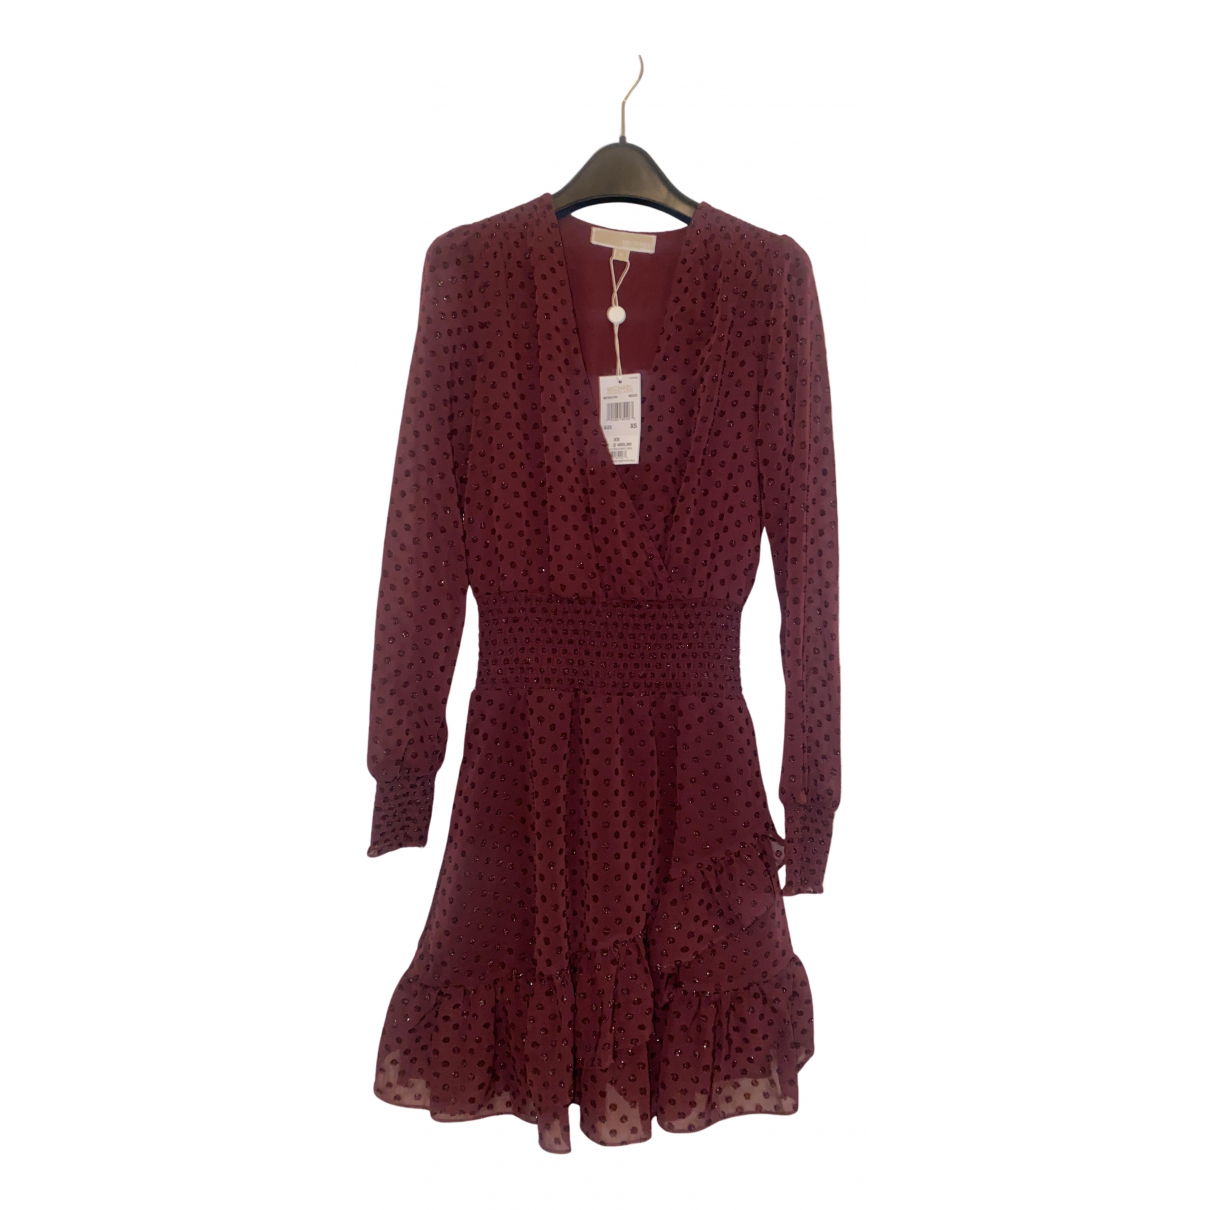 Michael Kors N Burgundy dress for Women 34 FR